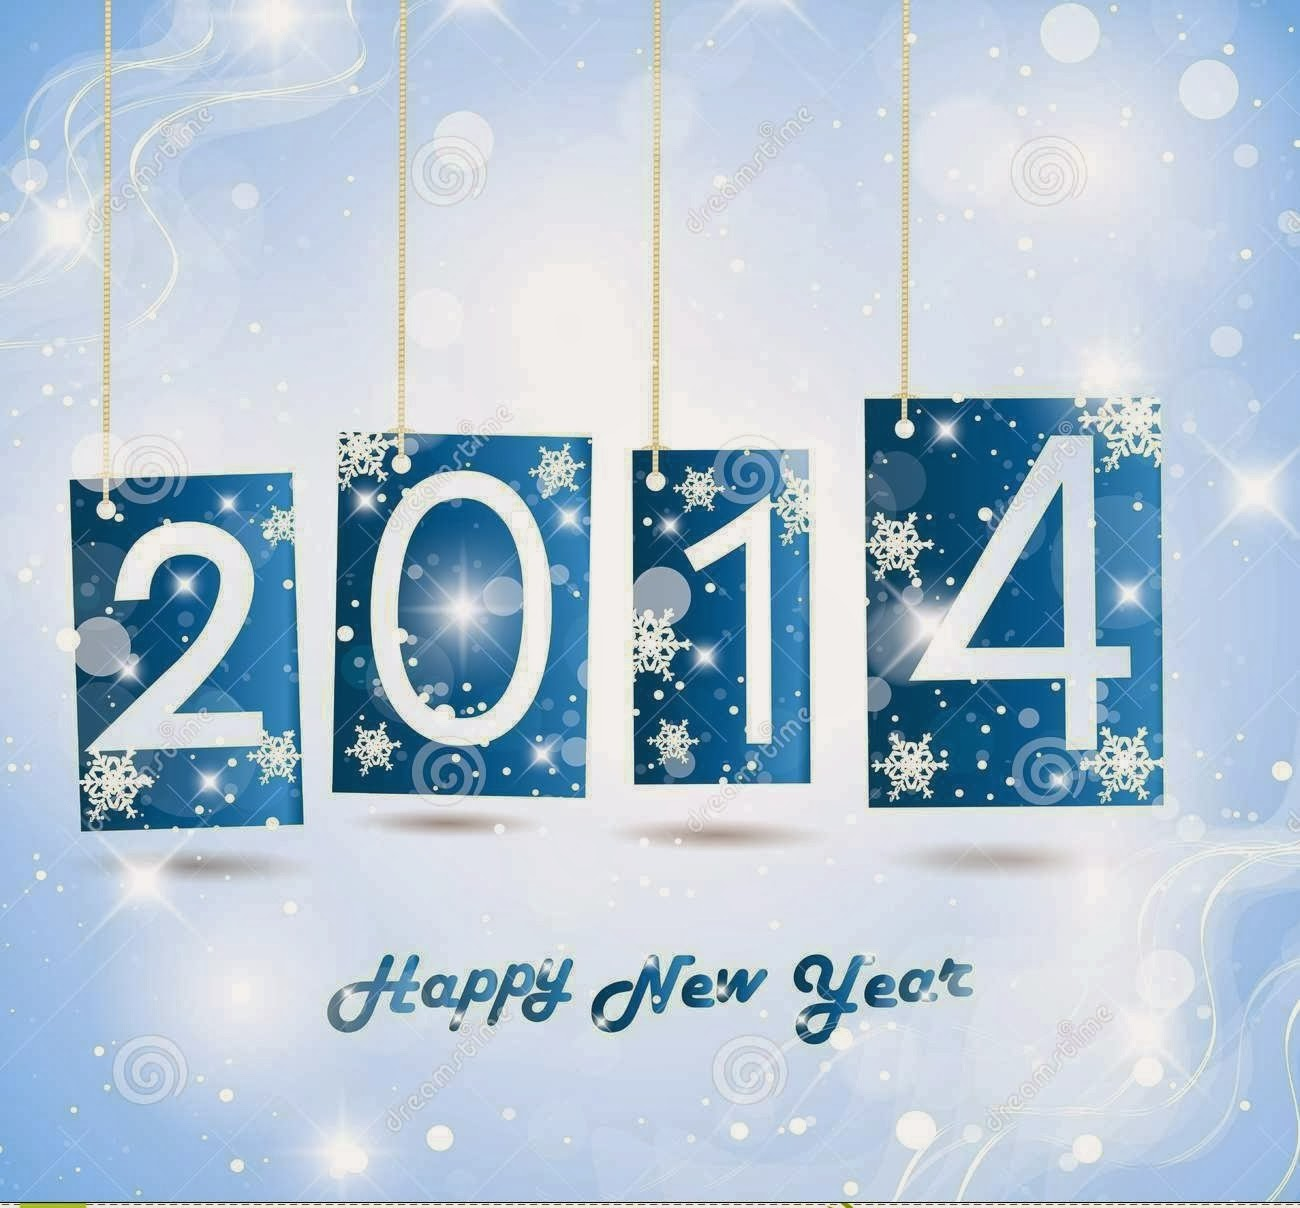 Happy New Year Greetings 2014 Happy New Year 2014 Wallpapers. 1300 x 1208.Happy New Year Email Signature For Outlook